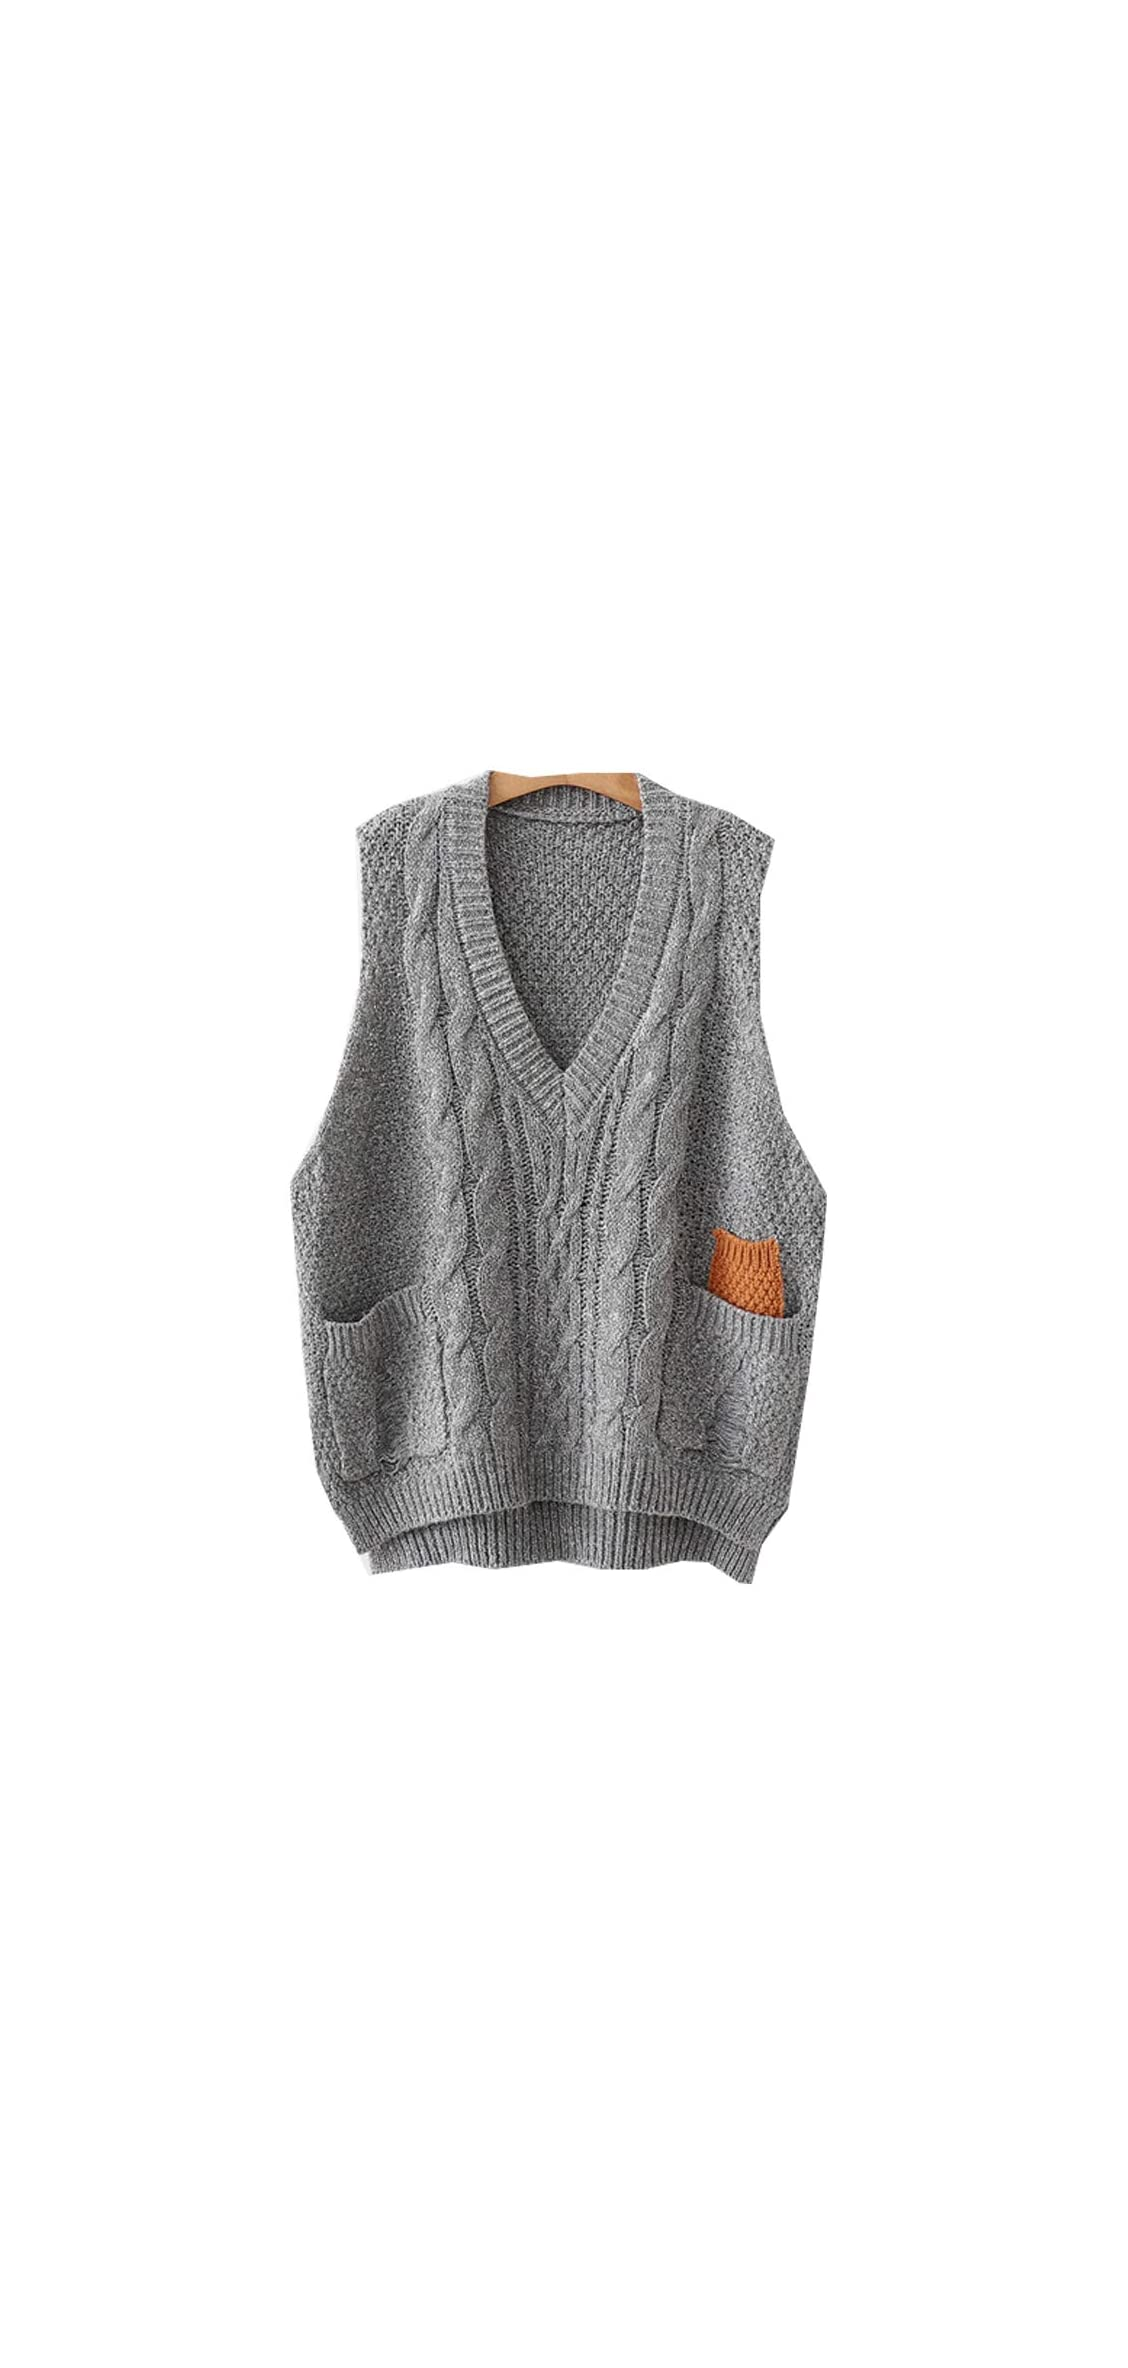 Women's V-neck Knitted Sweaters Vests Sleeveless Casual